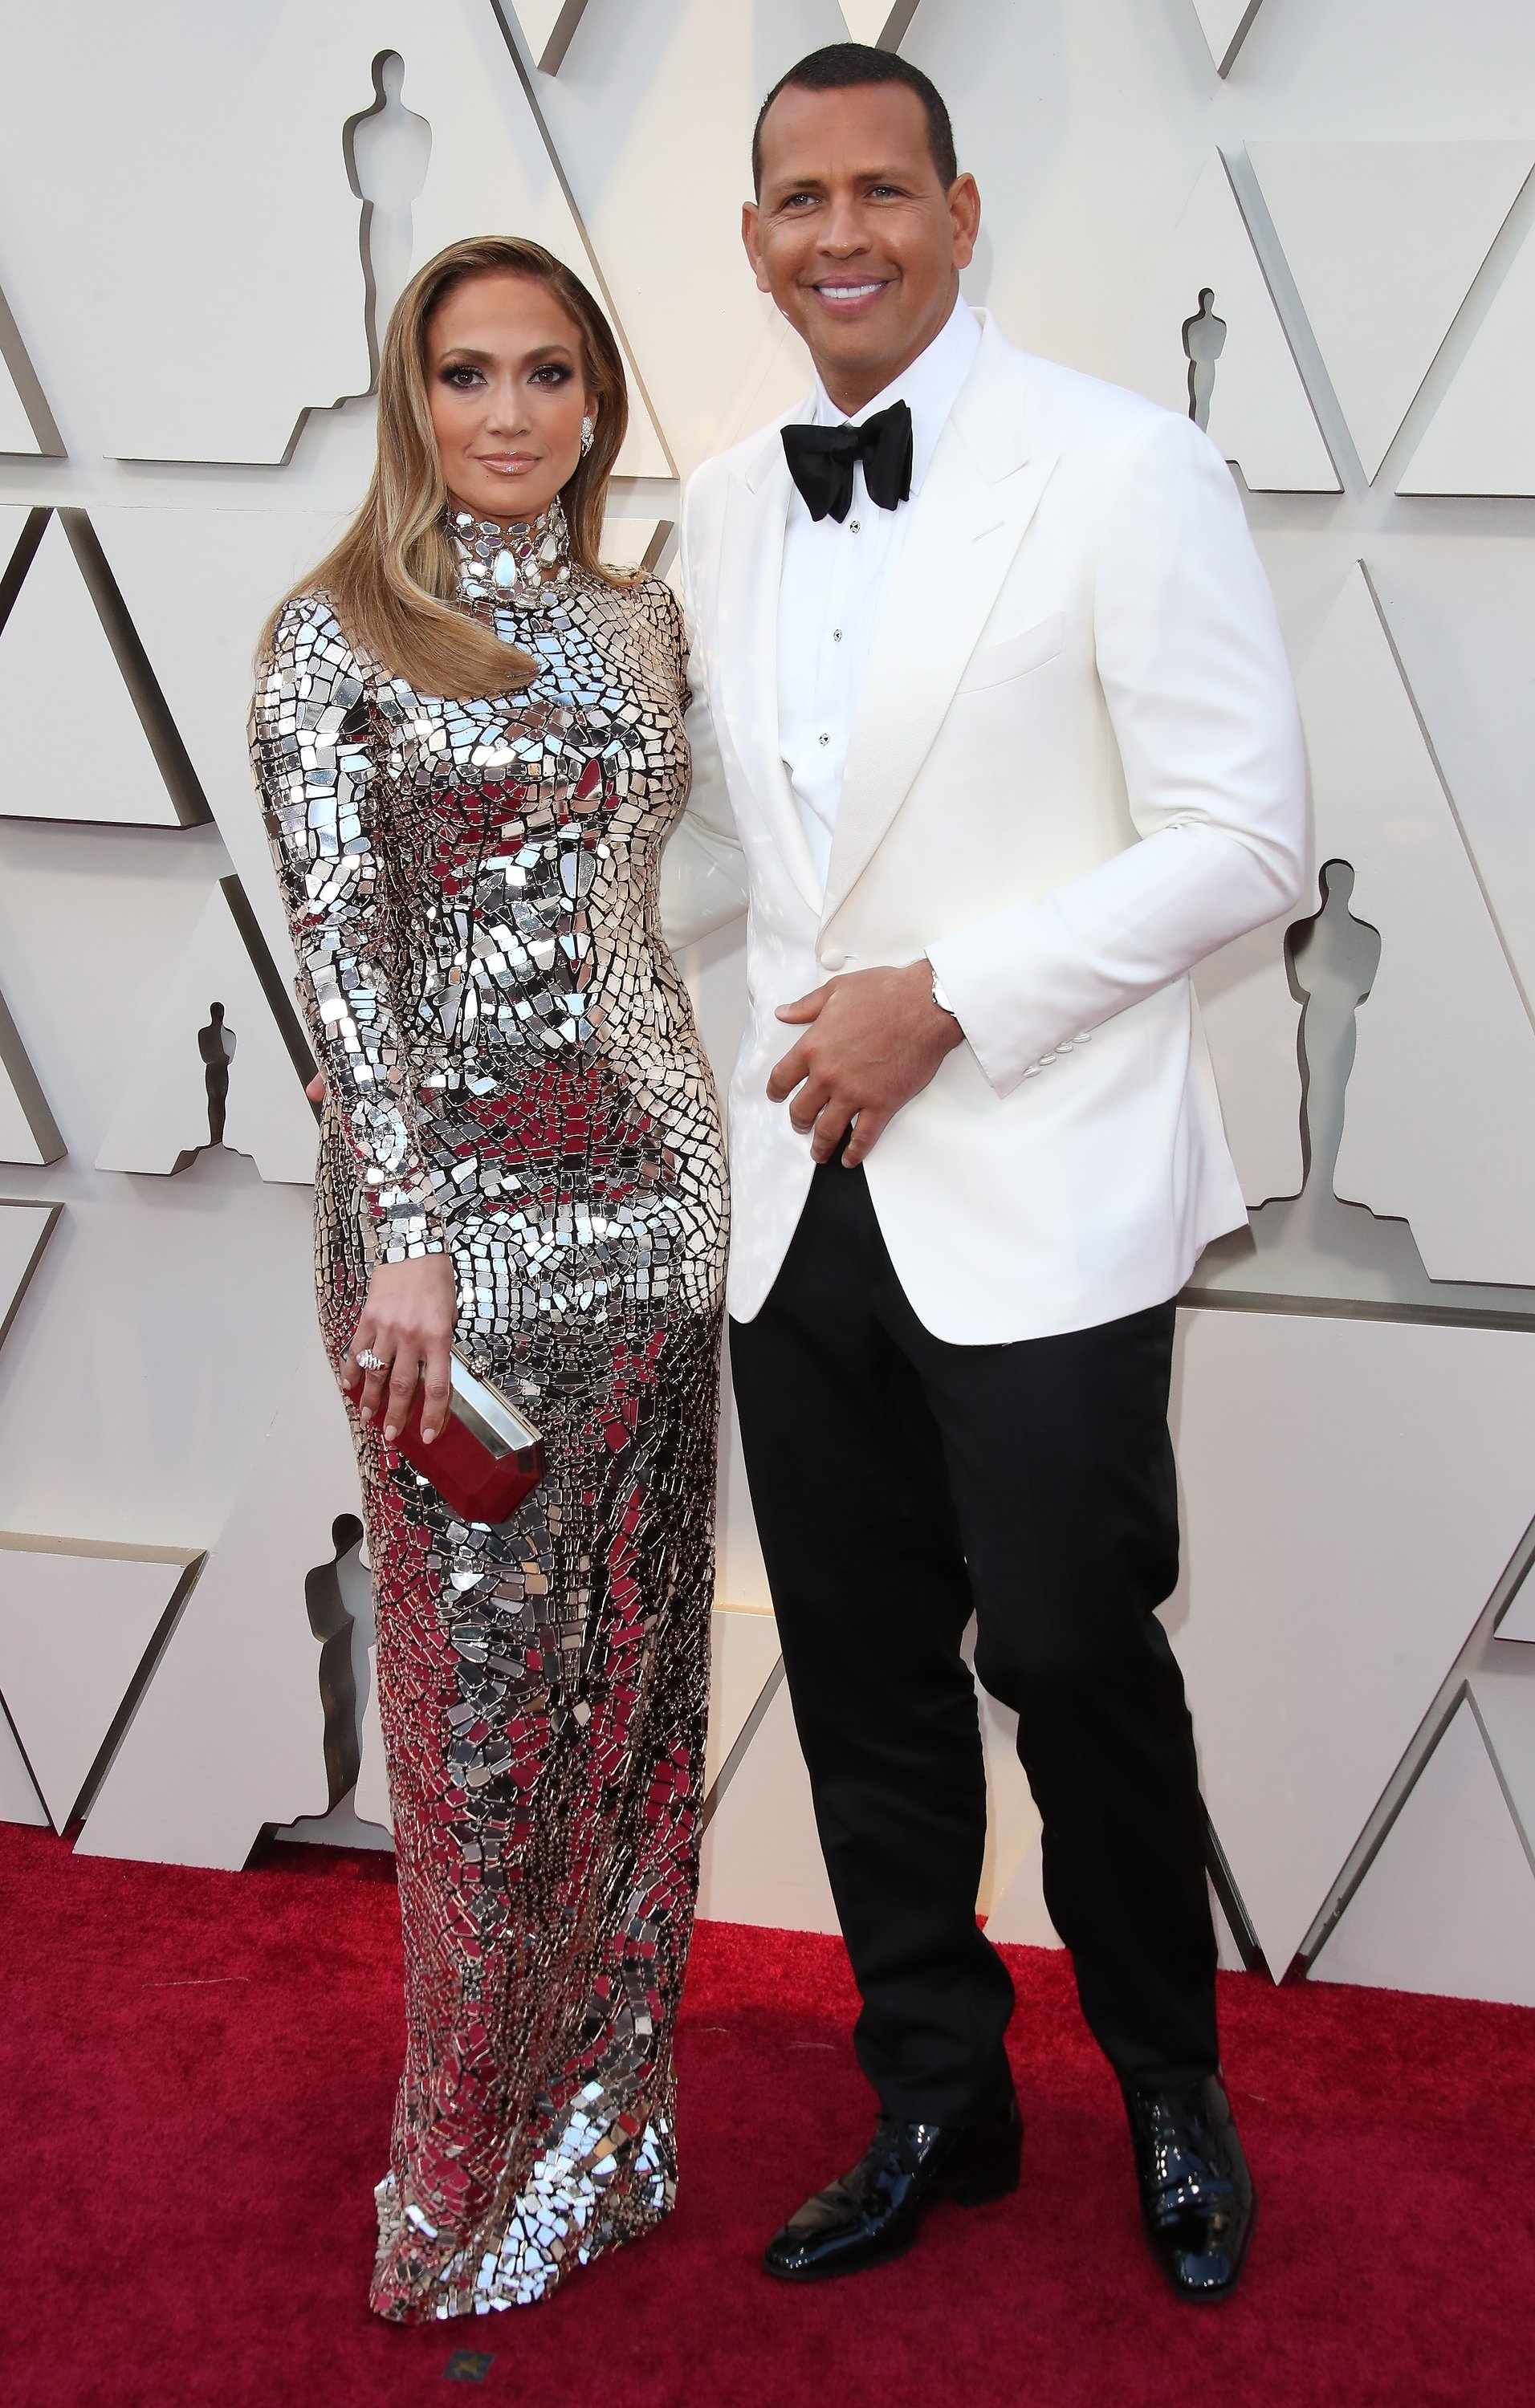 Alex Rodriguez and Jennifer Lopez attend the 91st Annual Academy Awards at Hollywood and Highland on February 24, 2019, in Hollywood, California. | Source: Getty Images.